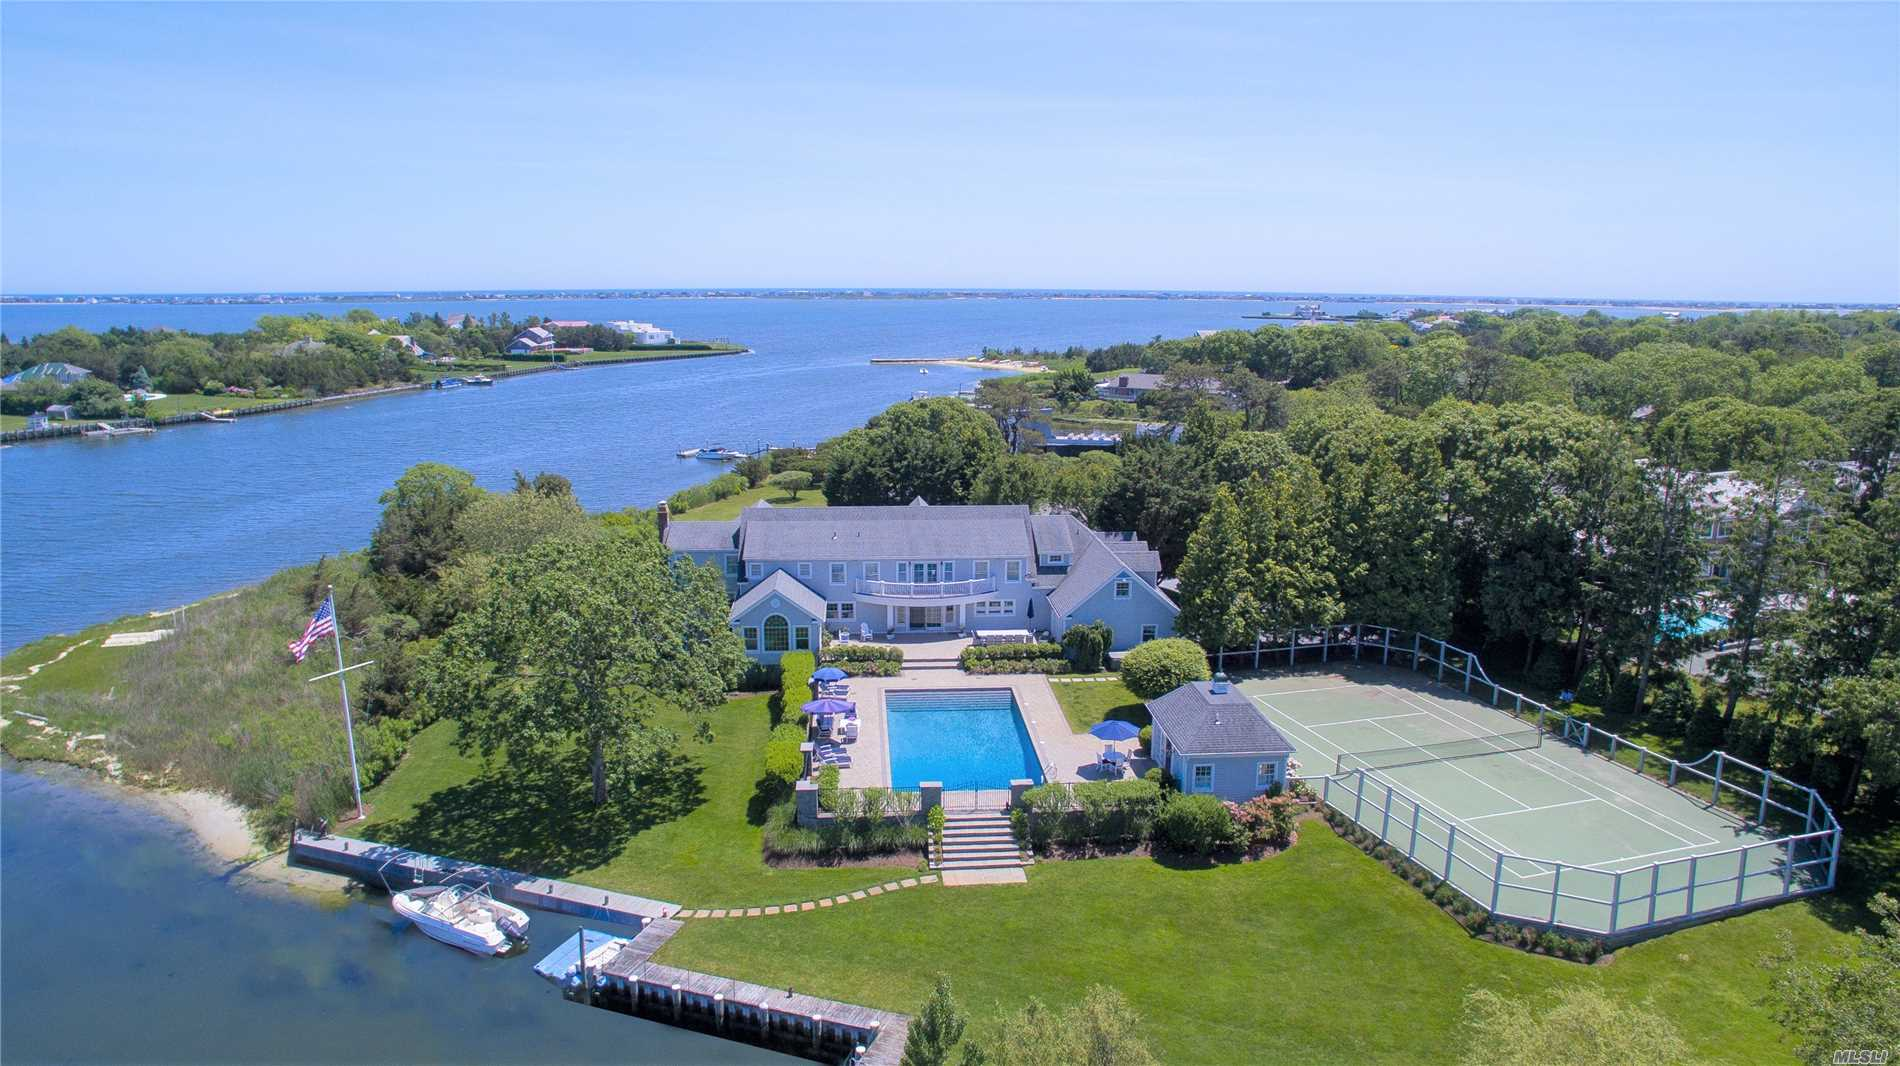 Water Views From Everywhere! Set On Over 2 Acres Down A Quiet Remsenburg Street, This Extraordinary Waterfront Property Offers A First-Floor Master Suite, Modern Kitchen, Waterfront Living And Dining Rooms, 4 Guest Bedrooms And Office/6th Bedroom. Oversized, Heated Gunite Pool, All-Weather Tennis Court, Pool House And So Much More!